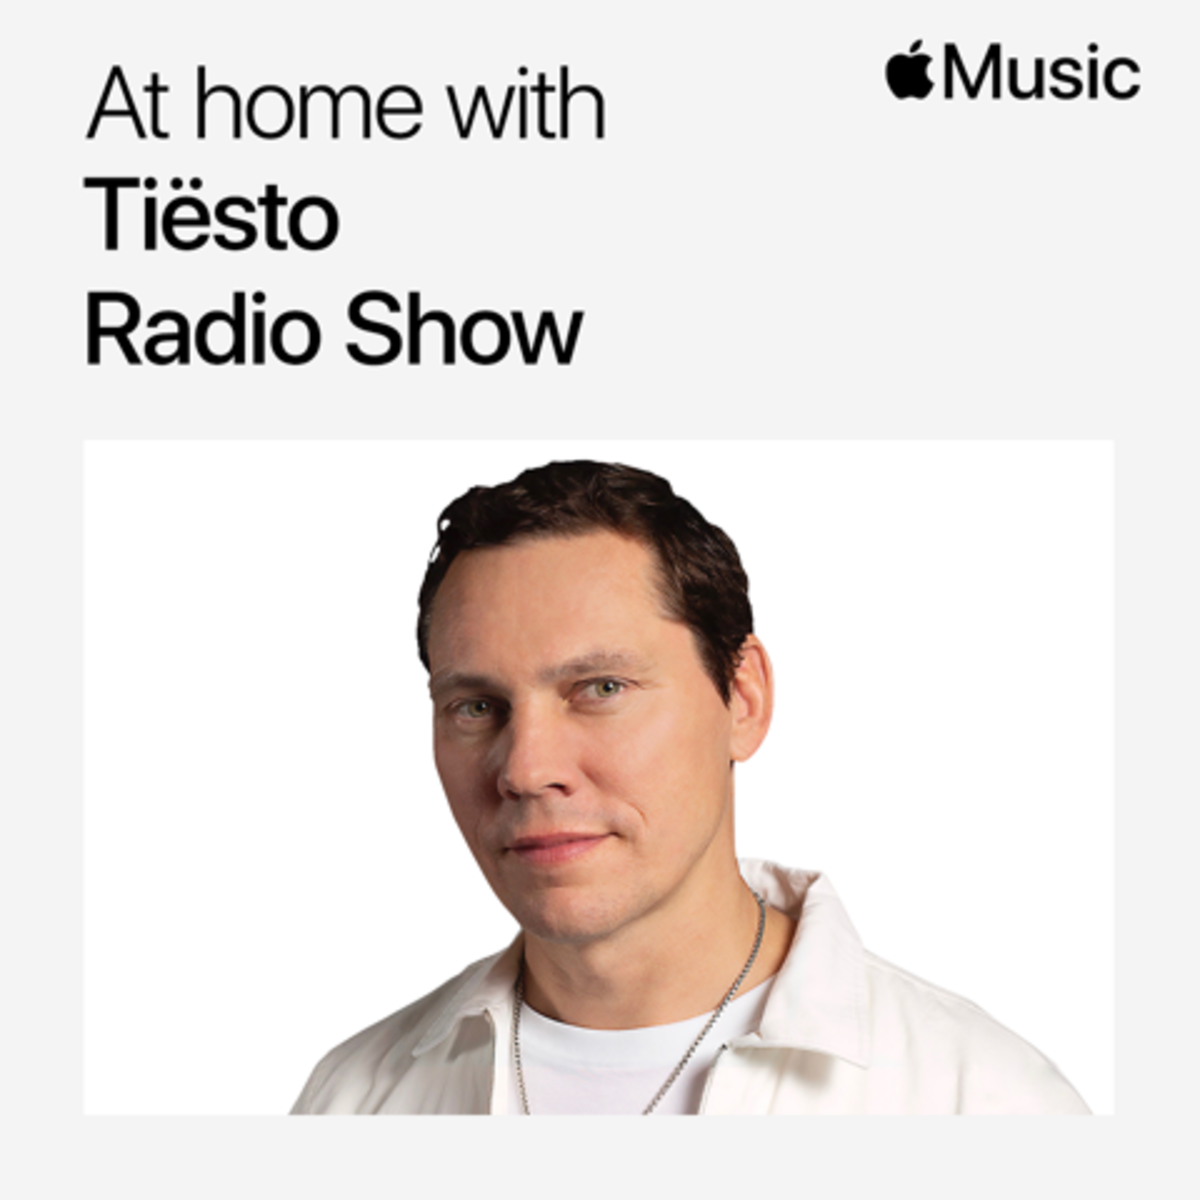 META-MS-WW-At_Home_Tiesto-20201005